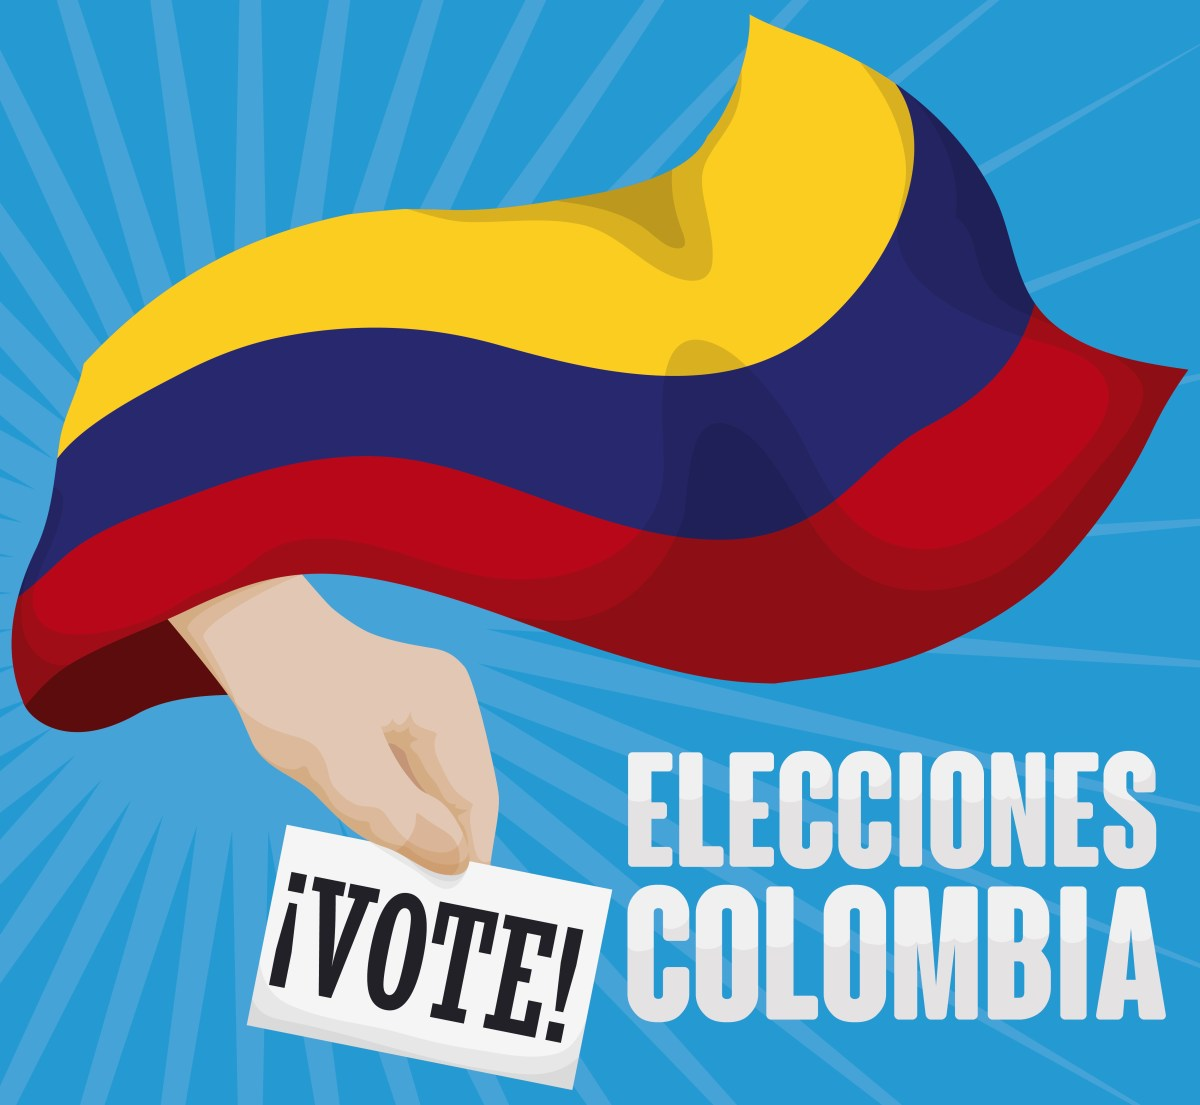 The 2018 Colombian Presidential Election